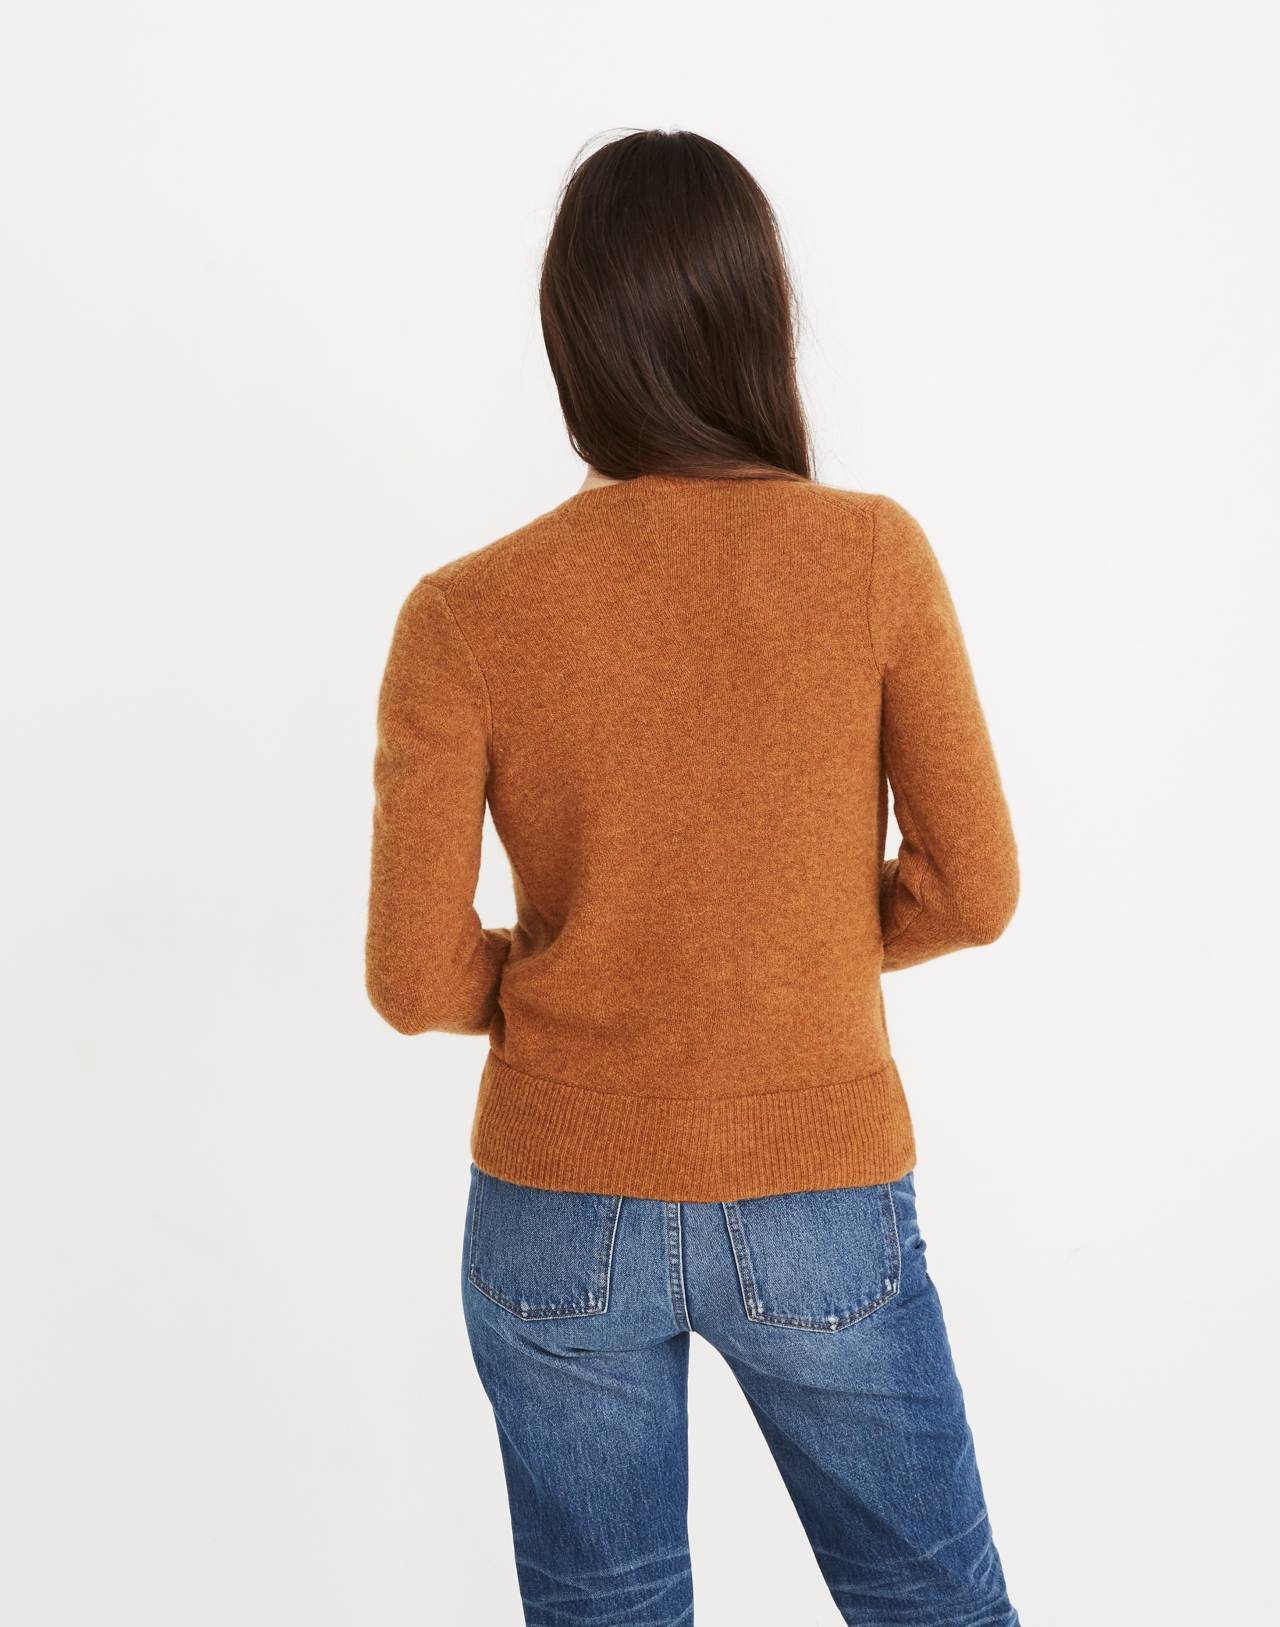 Wrap-Front Pullover Sweater in Coziest Yarn in hthr harvest image 3